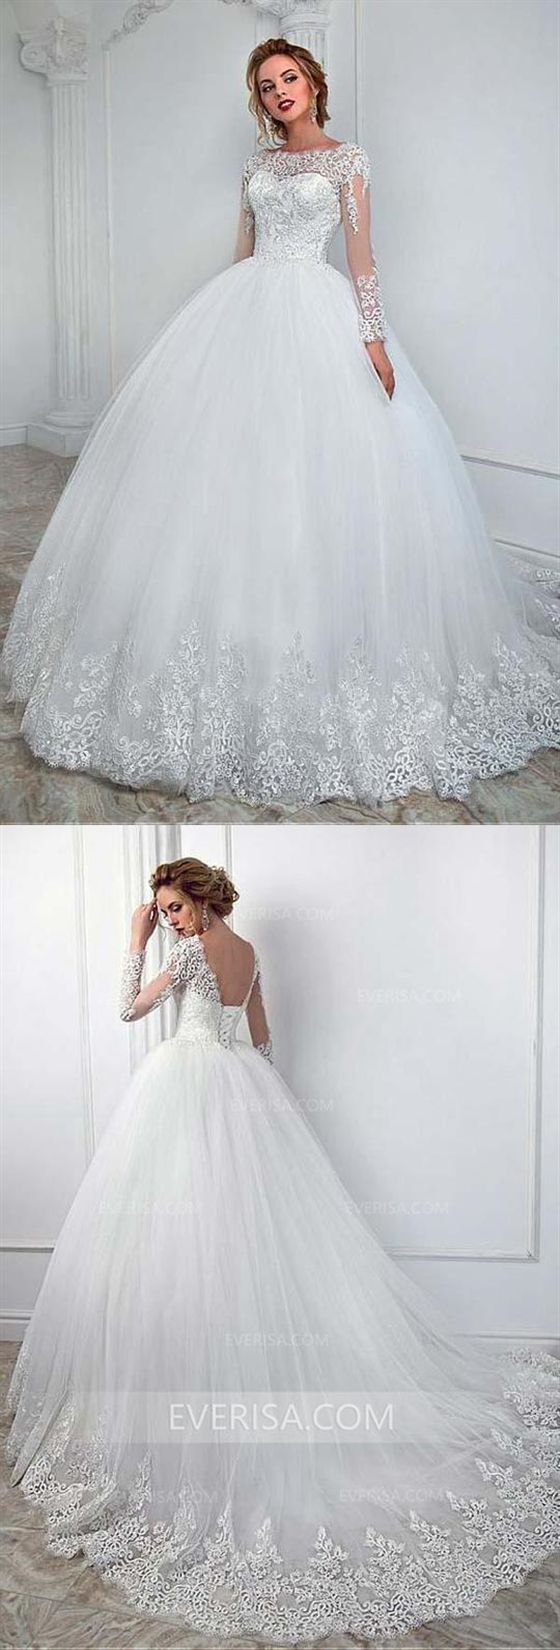 1df8ca25e18 High Quality White Long Sleeves Backless Tulle Wedding Dress Lace Bridal  Gowns  wedding  white